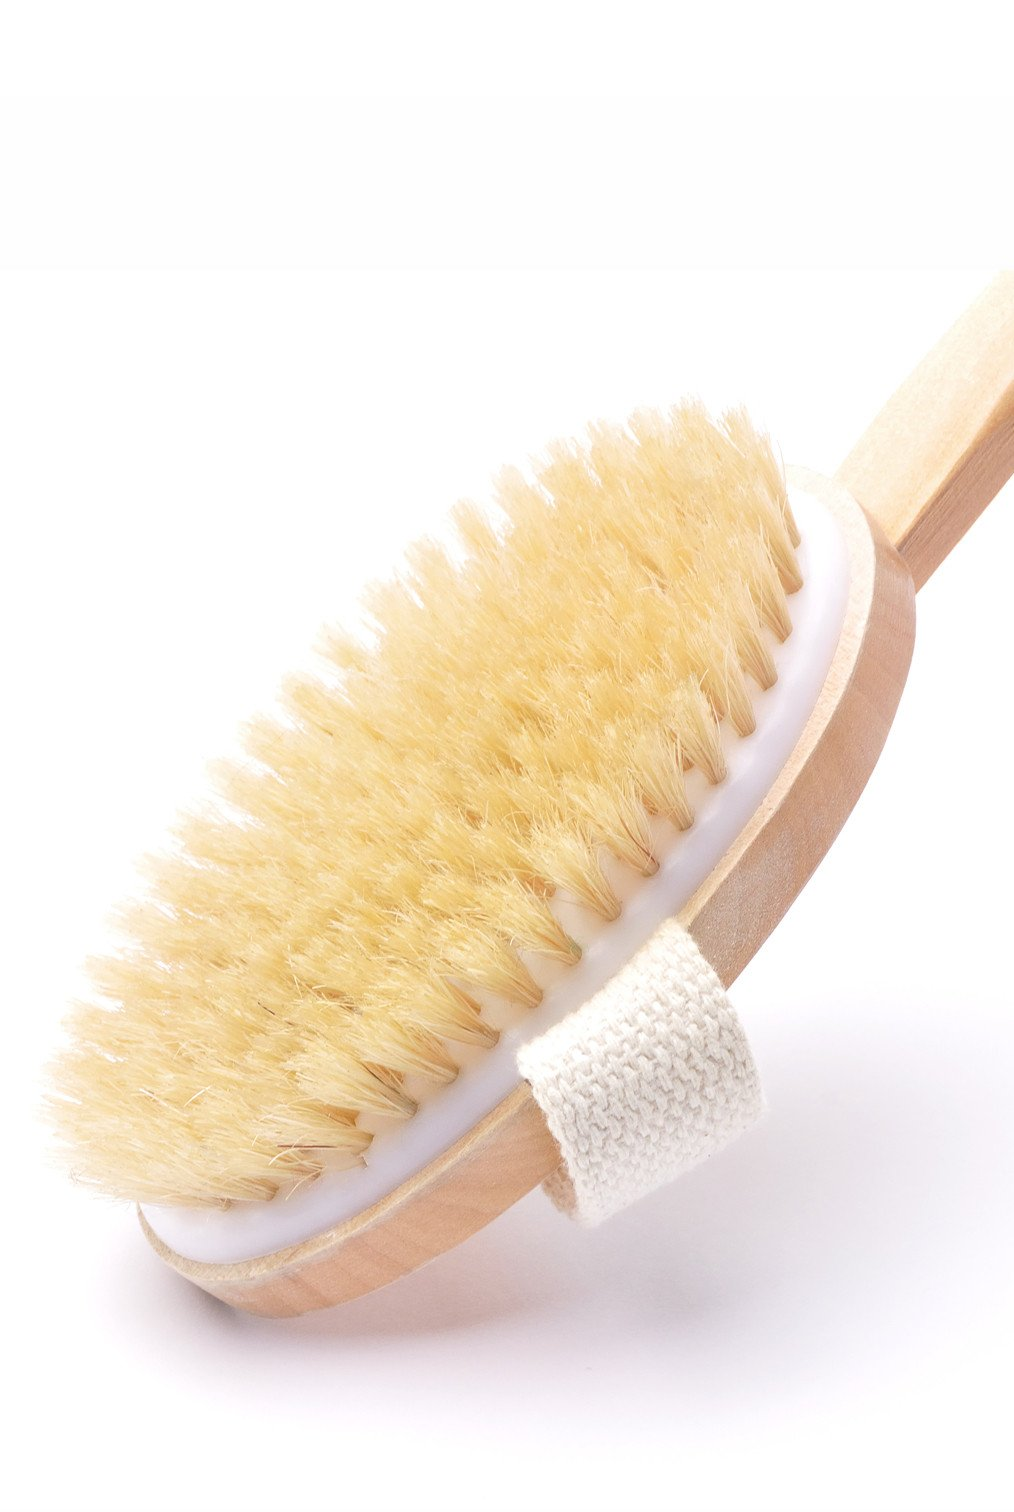 Bath & Body Brush - Sanctuary Spa Houston